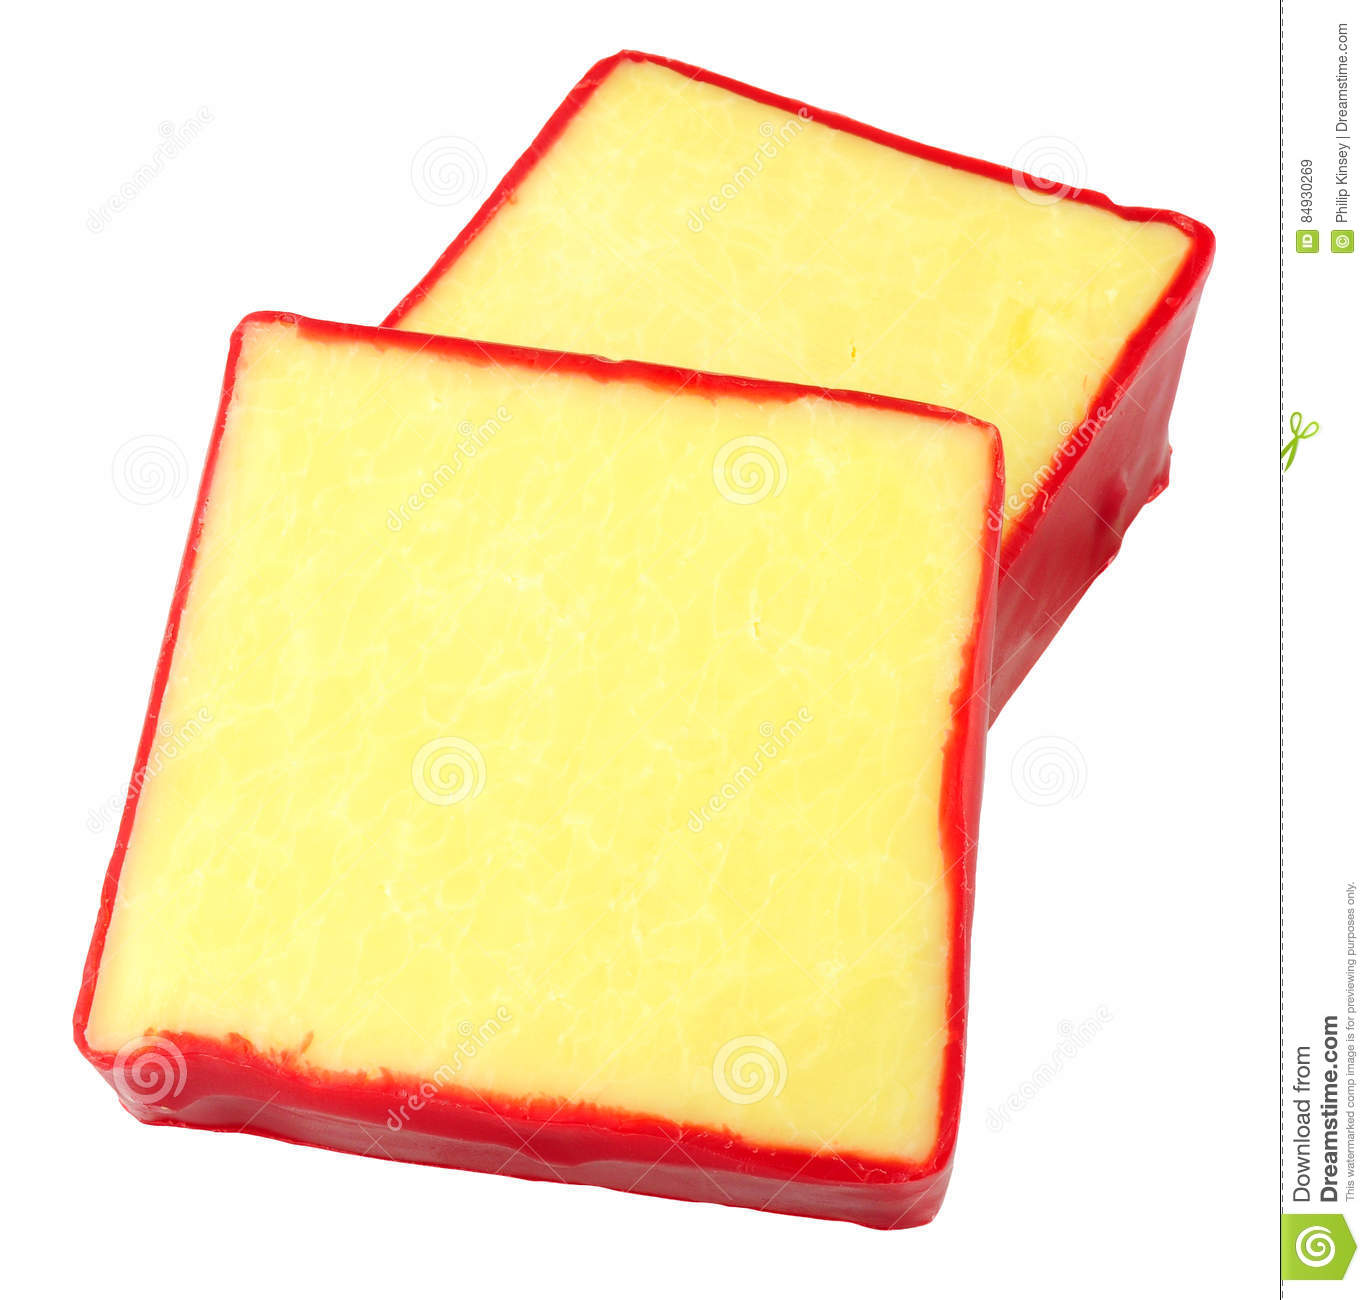 Monterey Jack Cheese stock image  Image of dairy, creamy